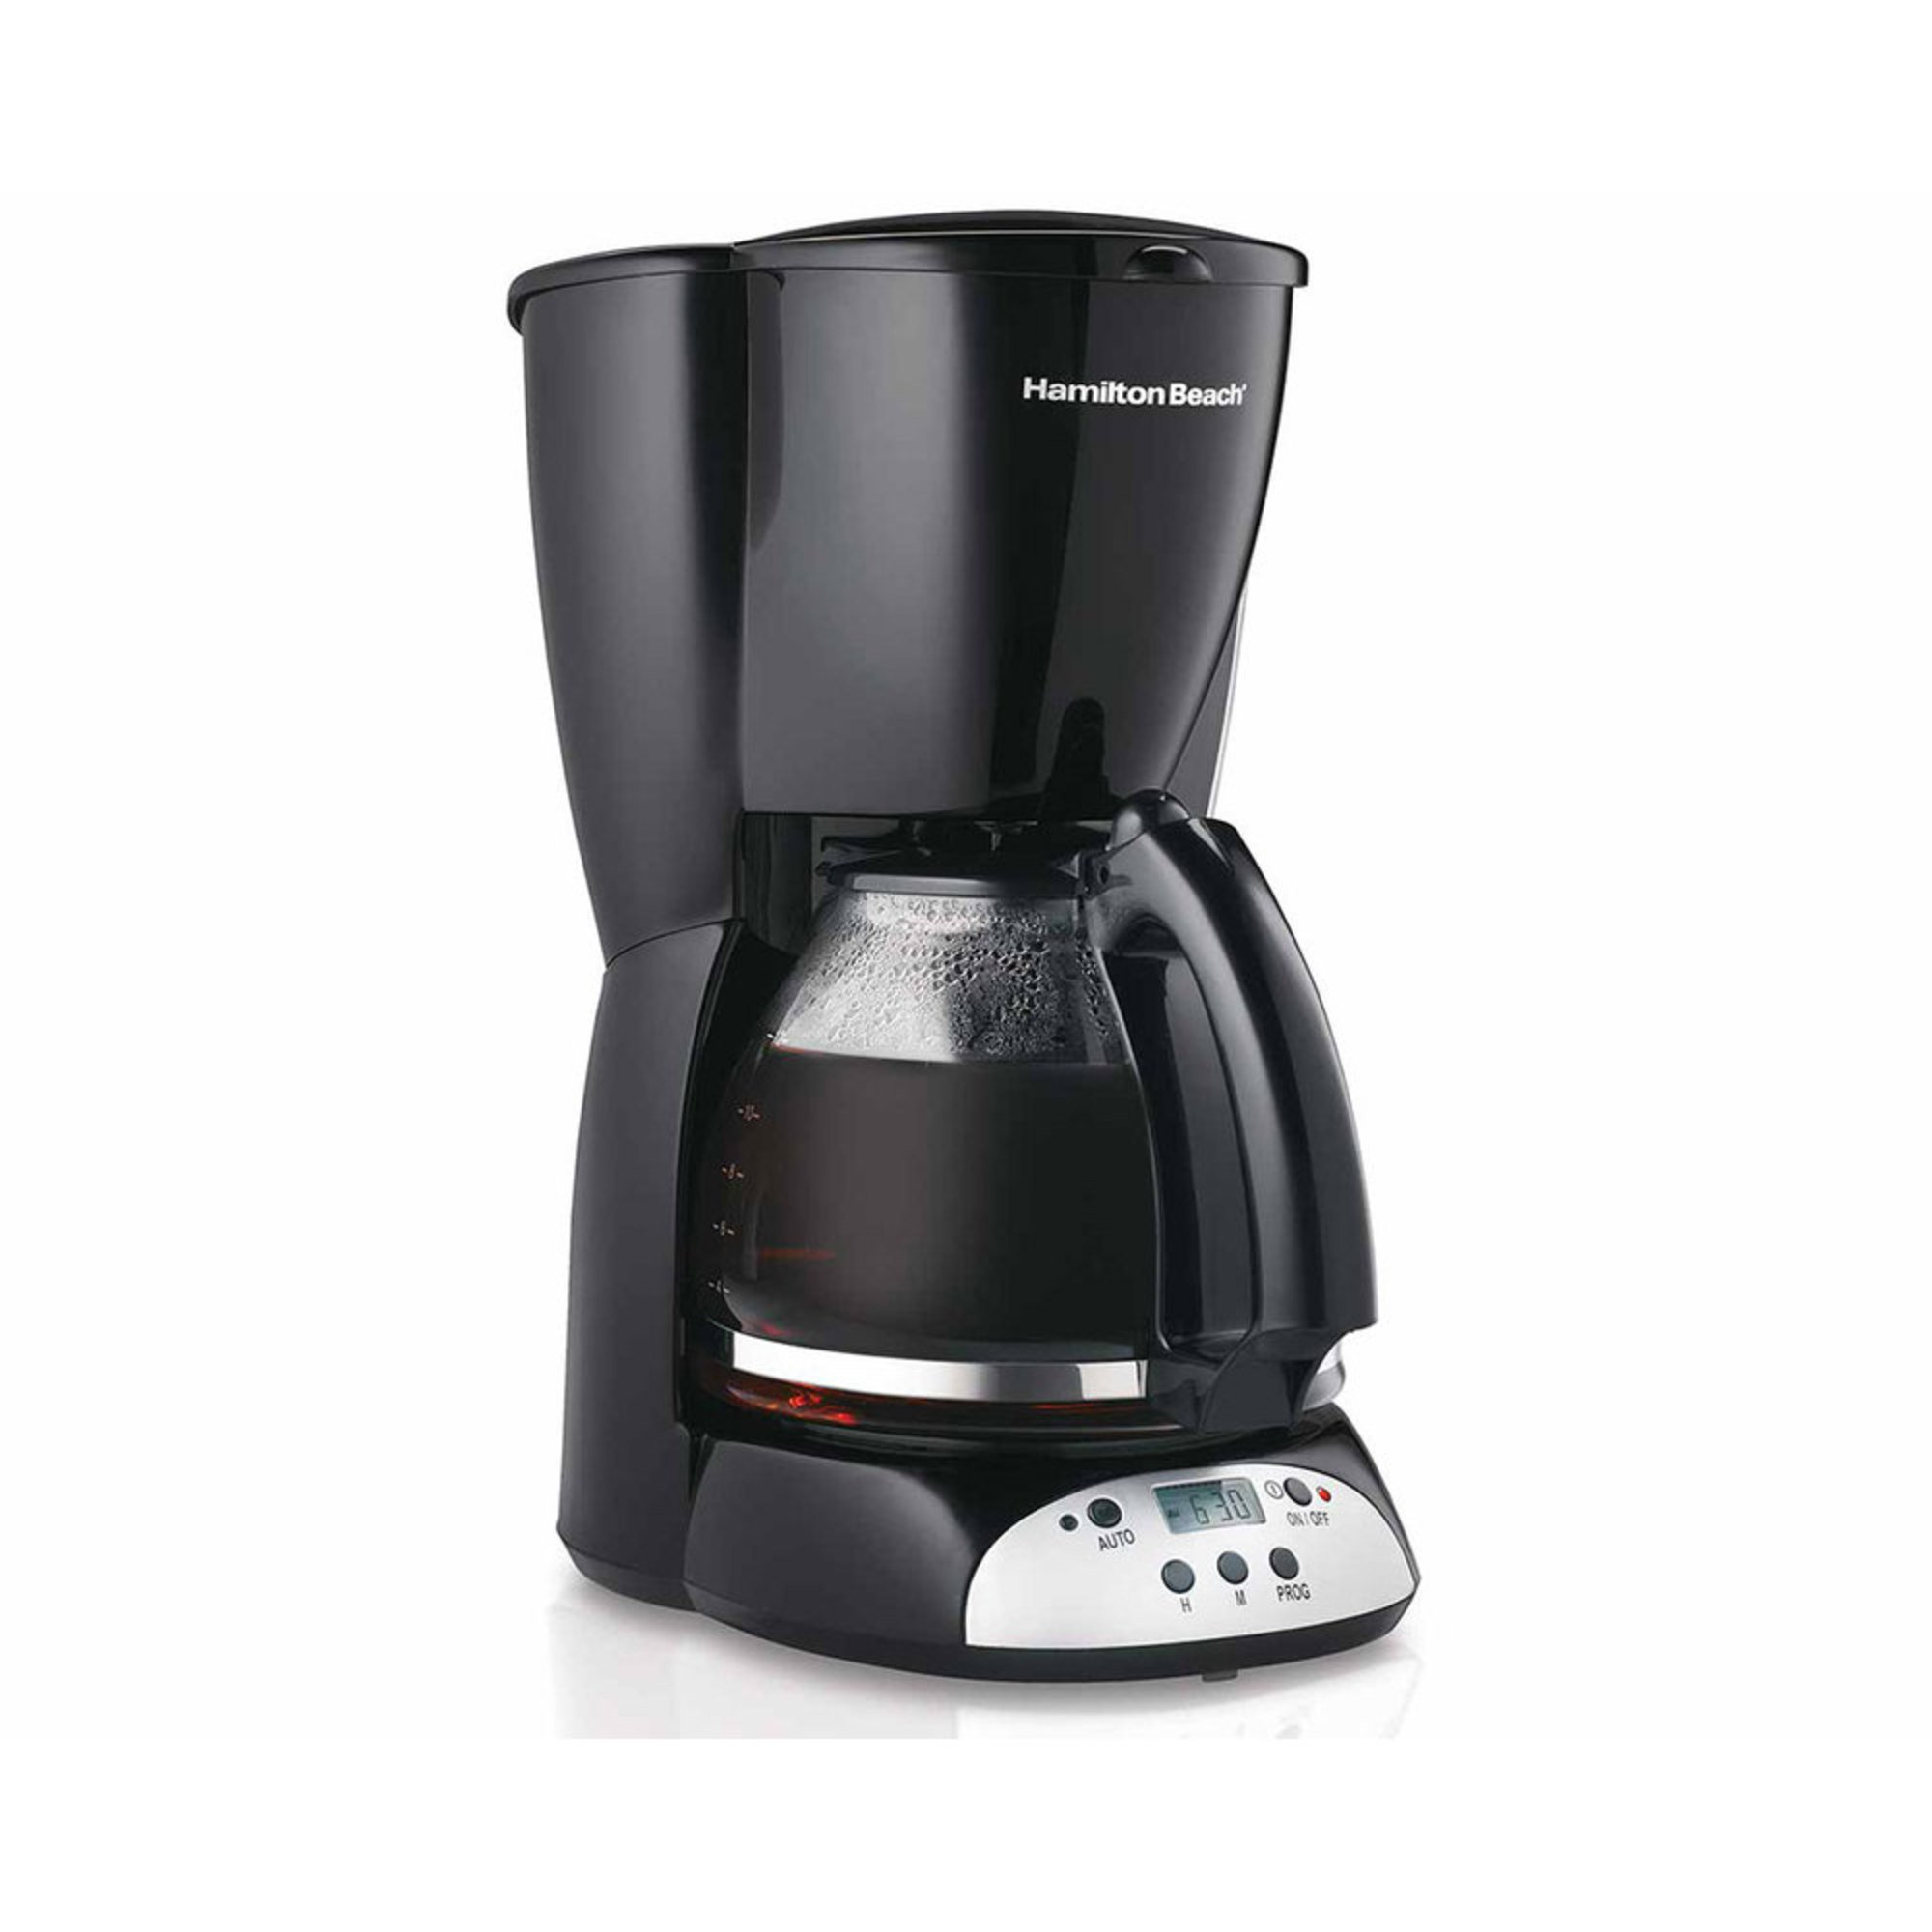 Coffee Maker Big W : Hamilton Beach 12-cup Programmable Coffee Maker (49465r) Coffee Makers Home - Shop Your Navy ...